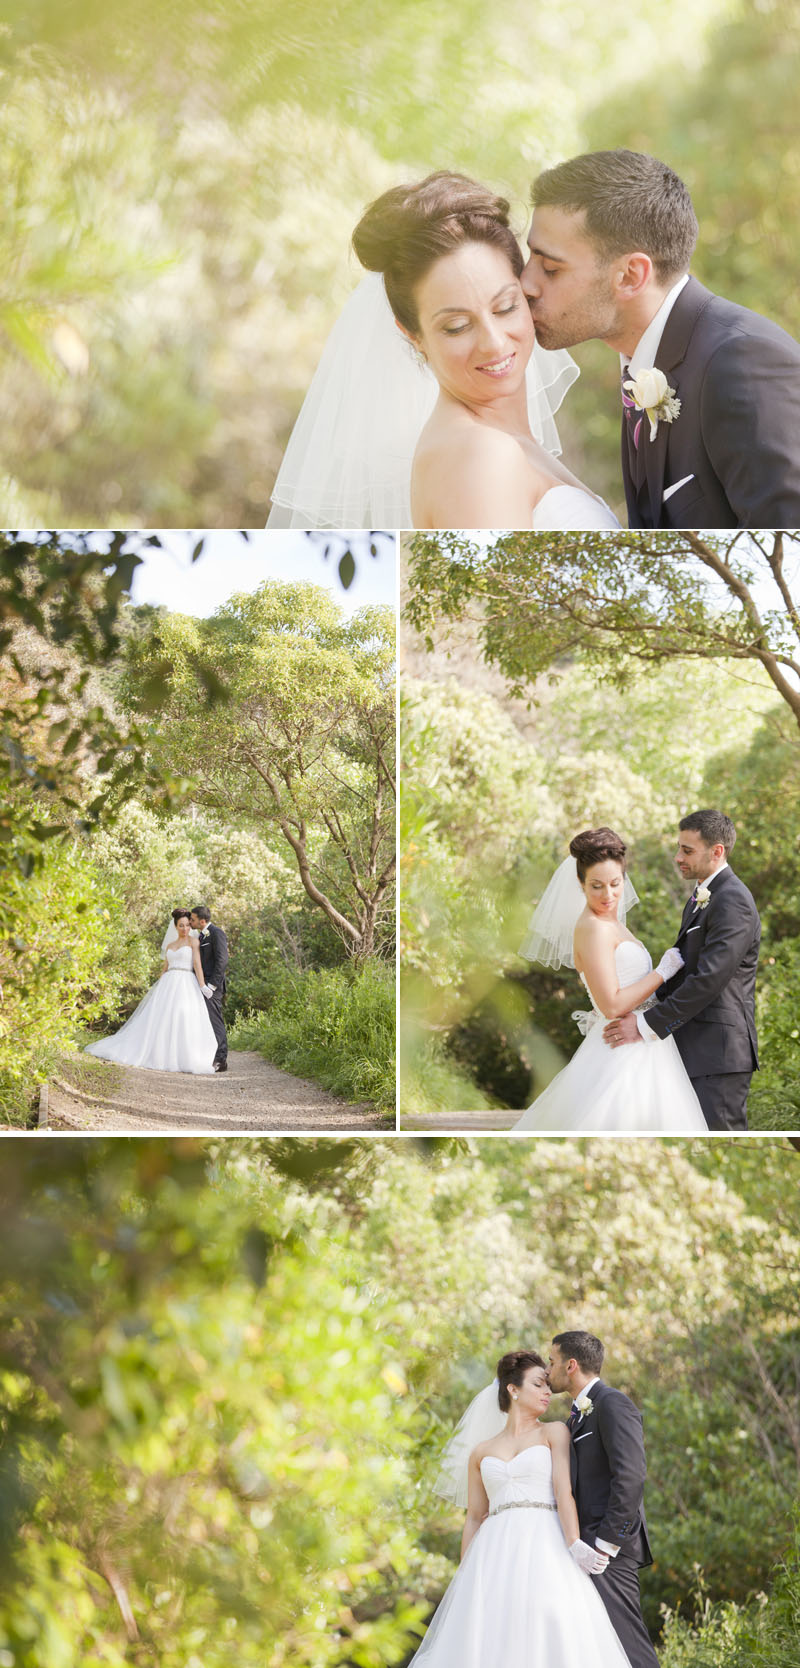 Wellington wedding4.jpg